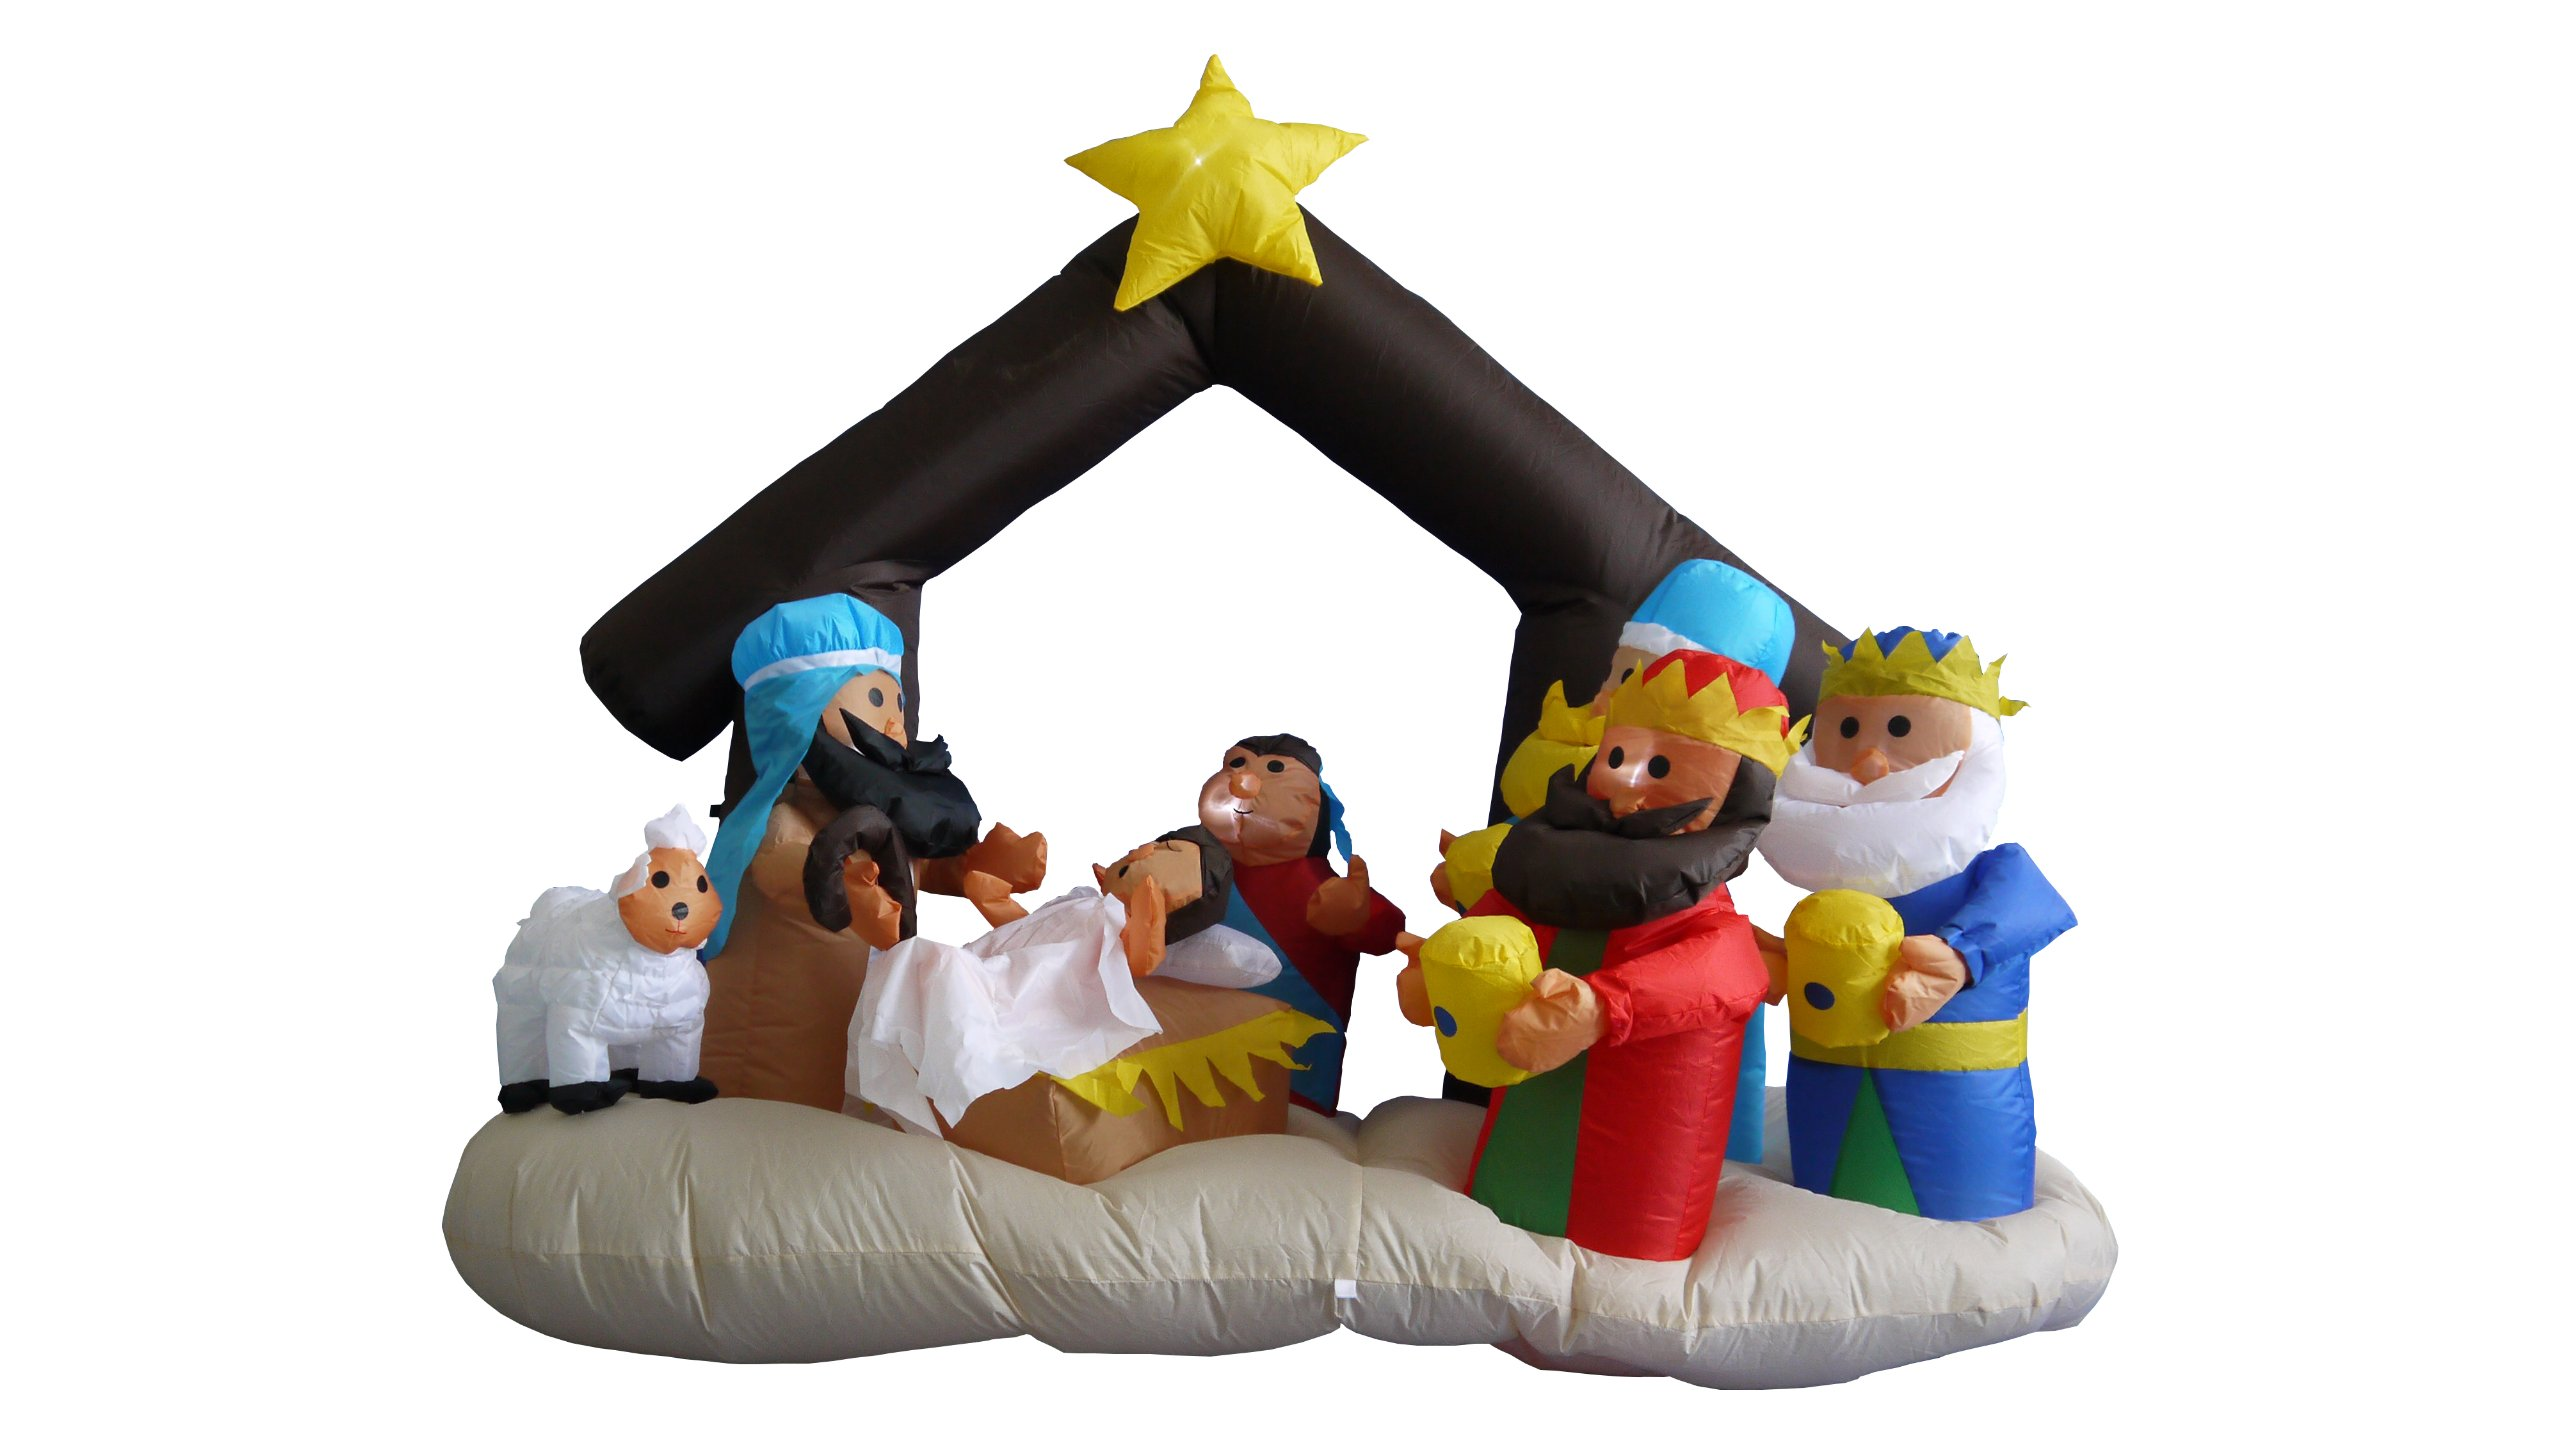 6 Foot Christmas Inflatable Nativity Scene with Three Kings Decoration